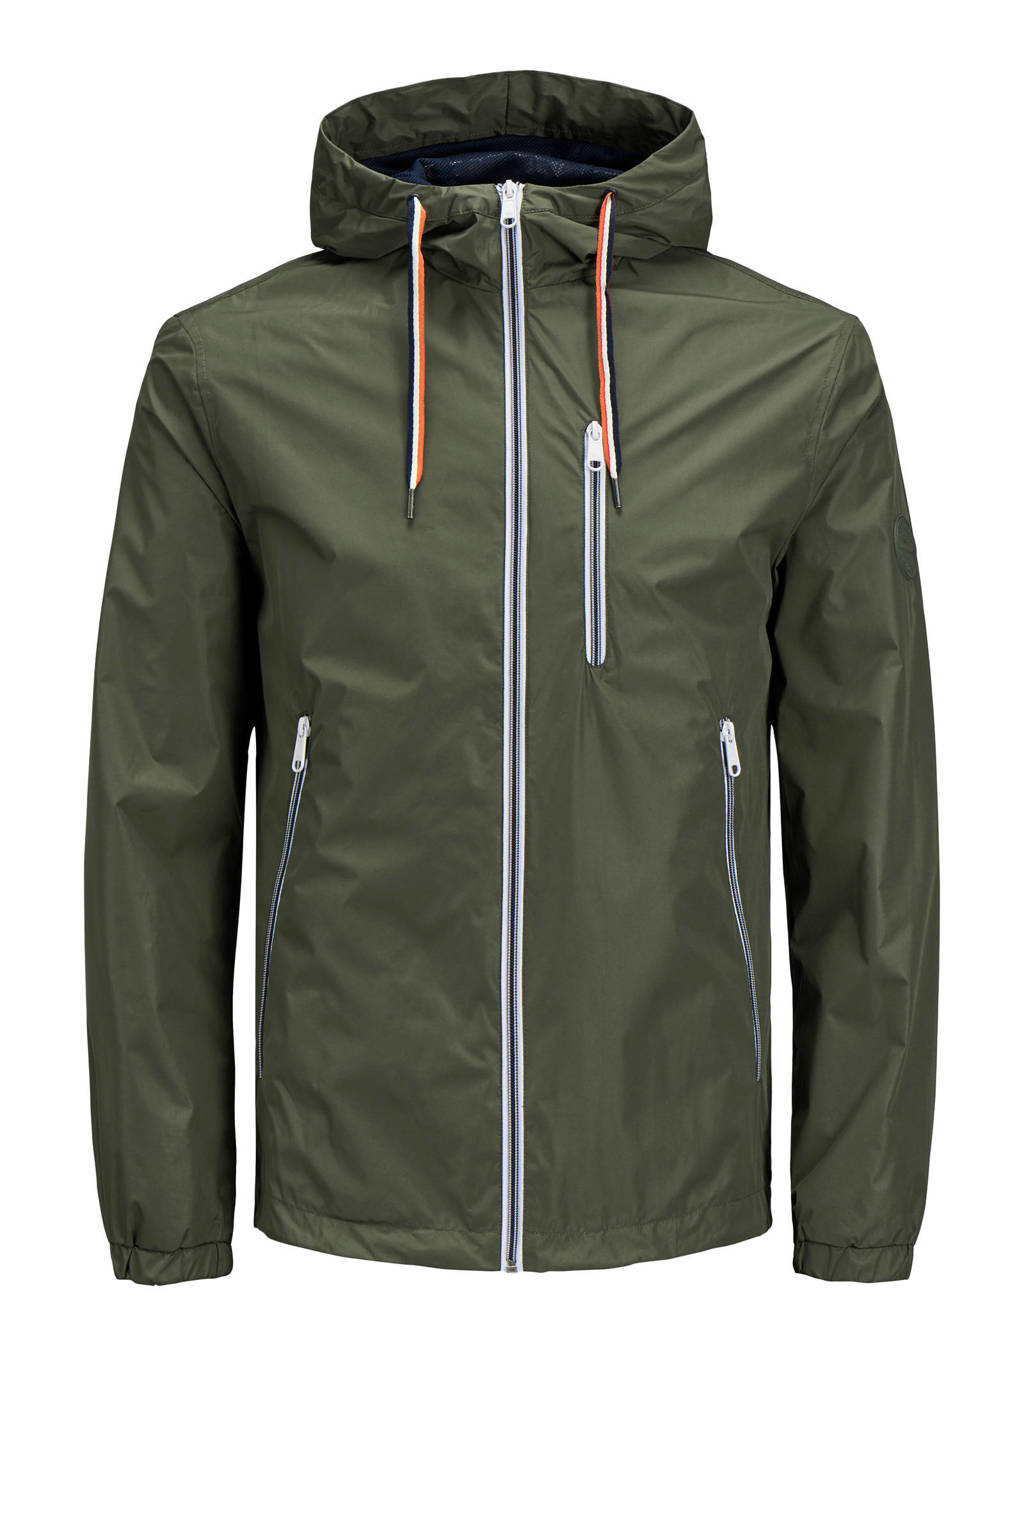 Jack & Jones Originals jas met capuchon, Khakigroen